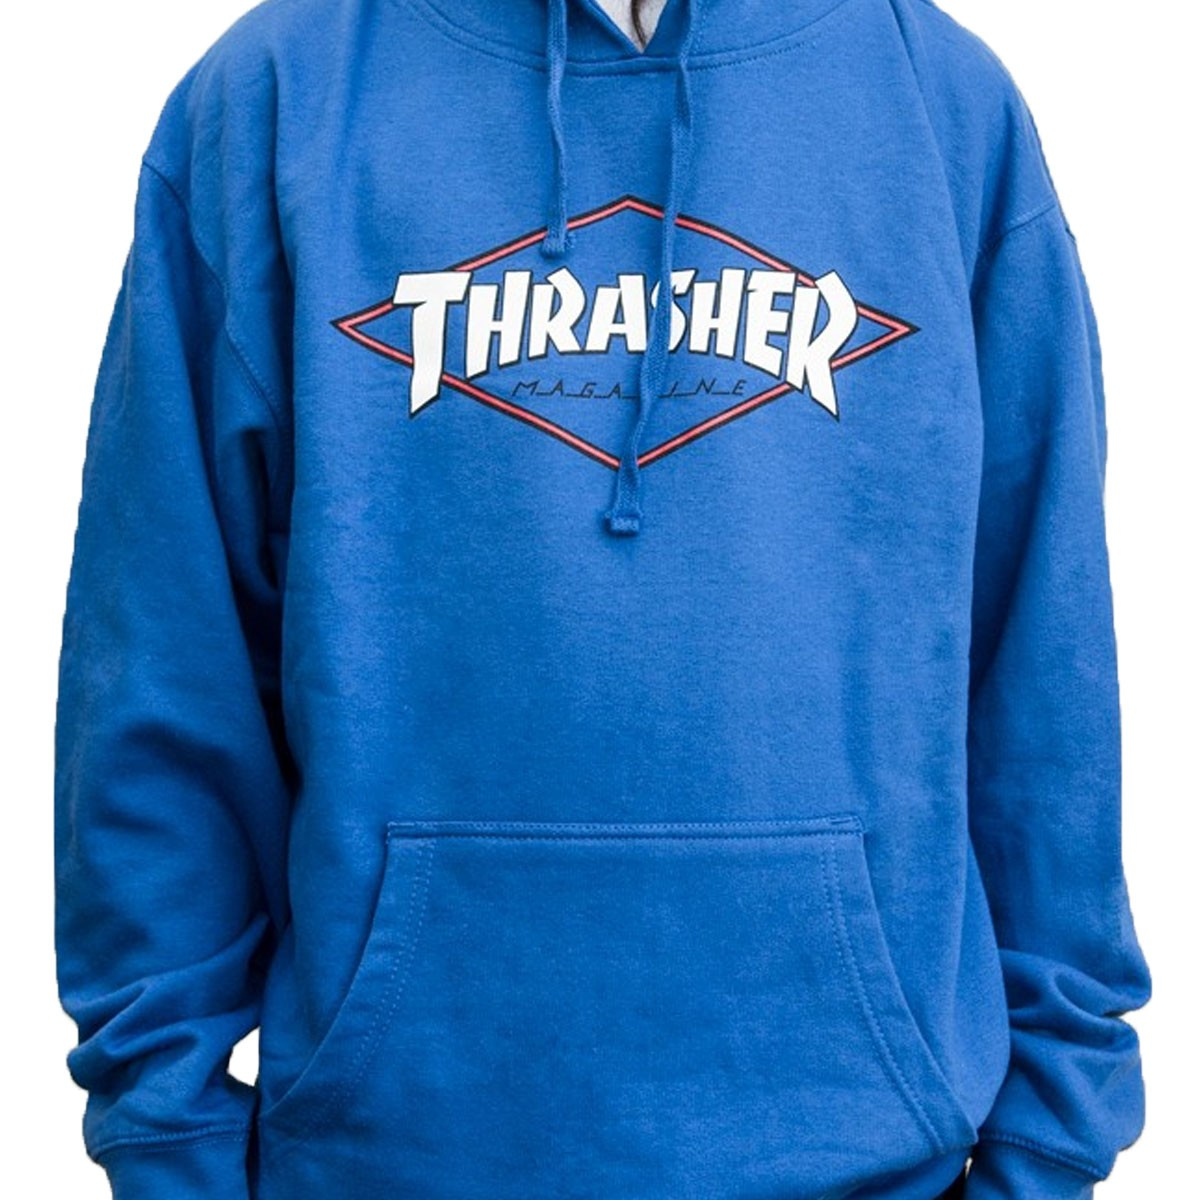 Thrasher OG Diamond Logo Pullover Sweatshirt - Royal Blue